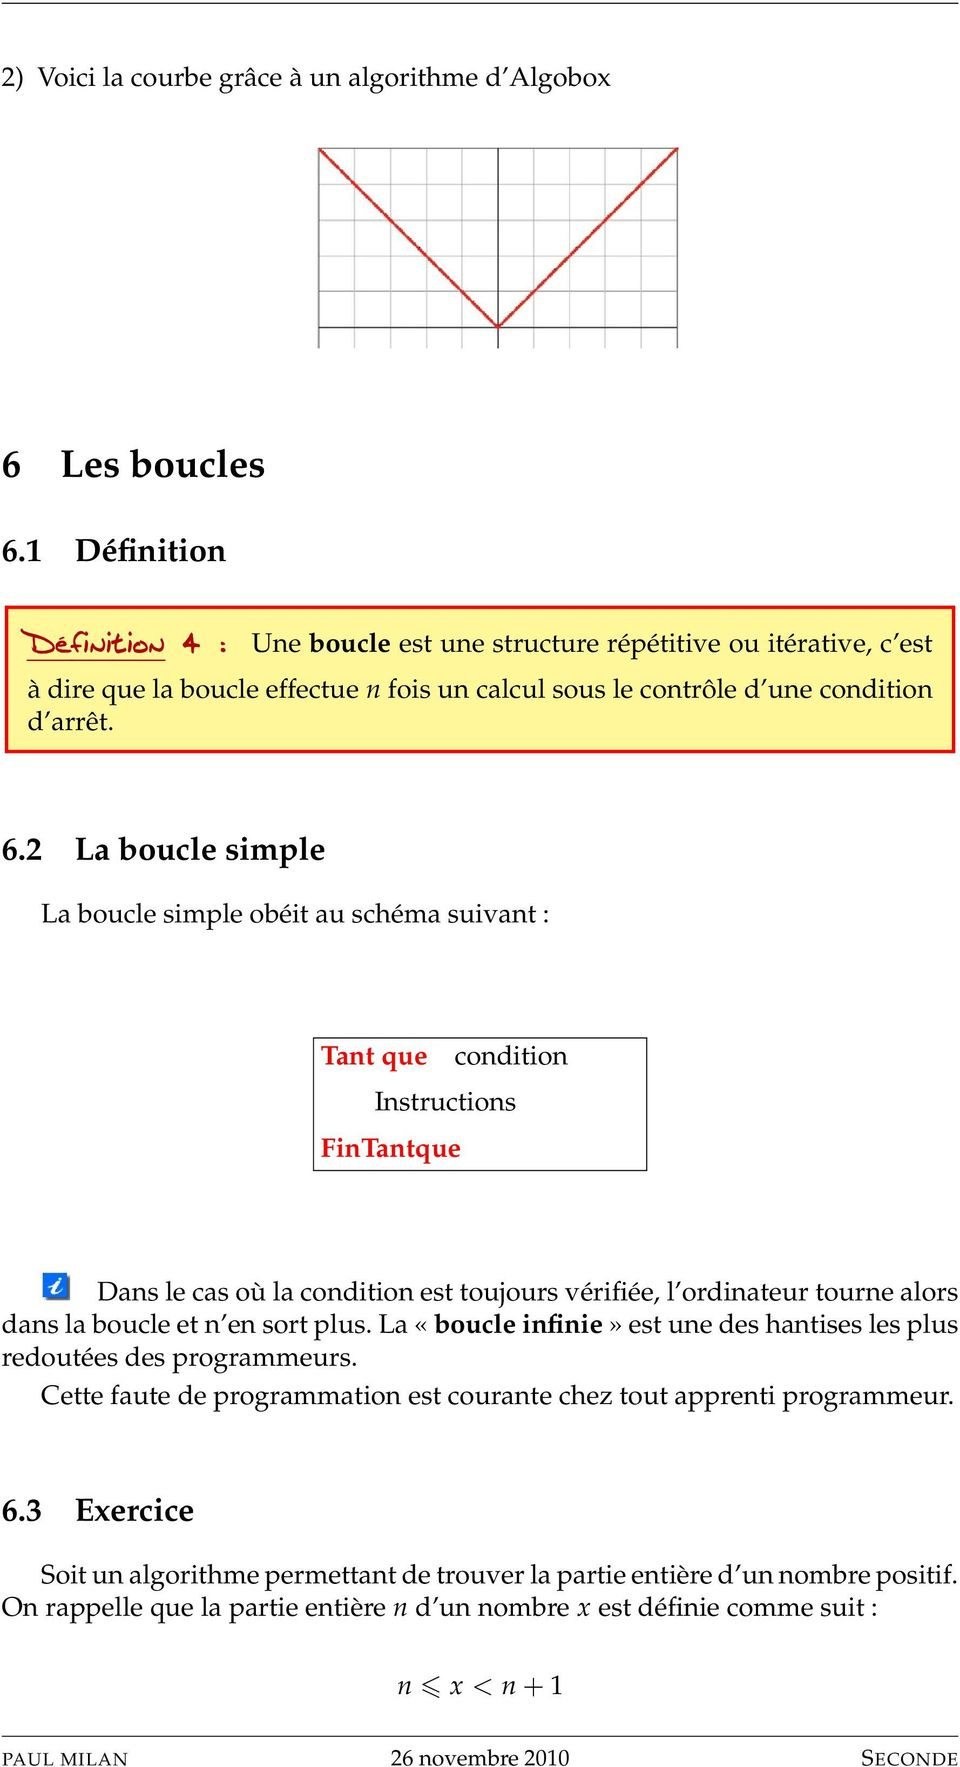 2 La boucle simple La boucle simple obéit au schéma suivant : Tant que condition Instructions FinTantque Dans le cas où la condition est toujours vérifiée, l ordinateur tourne alors dans la boucle